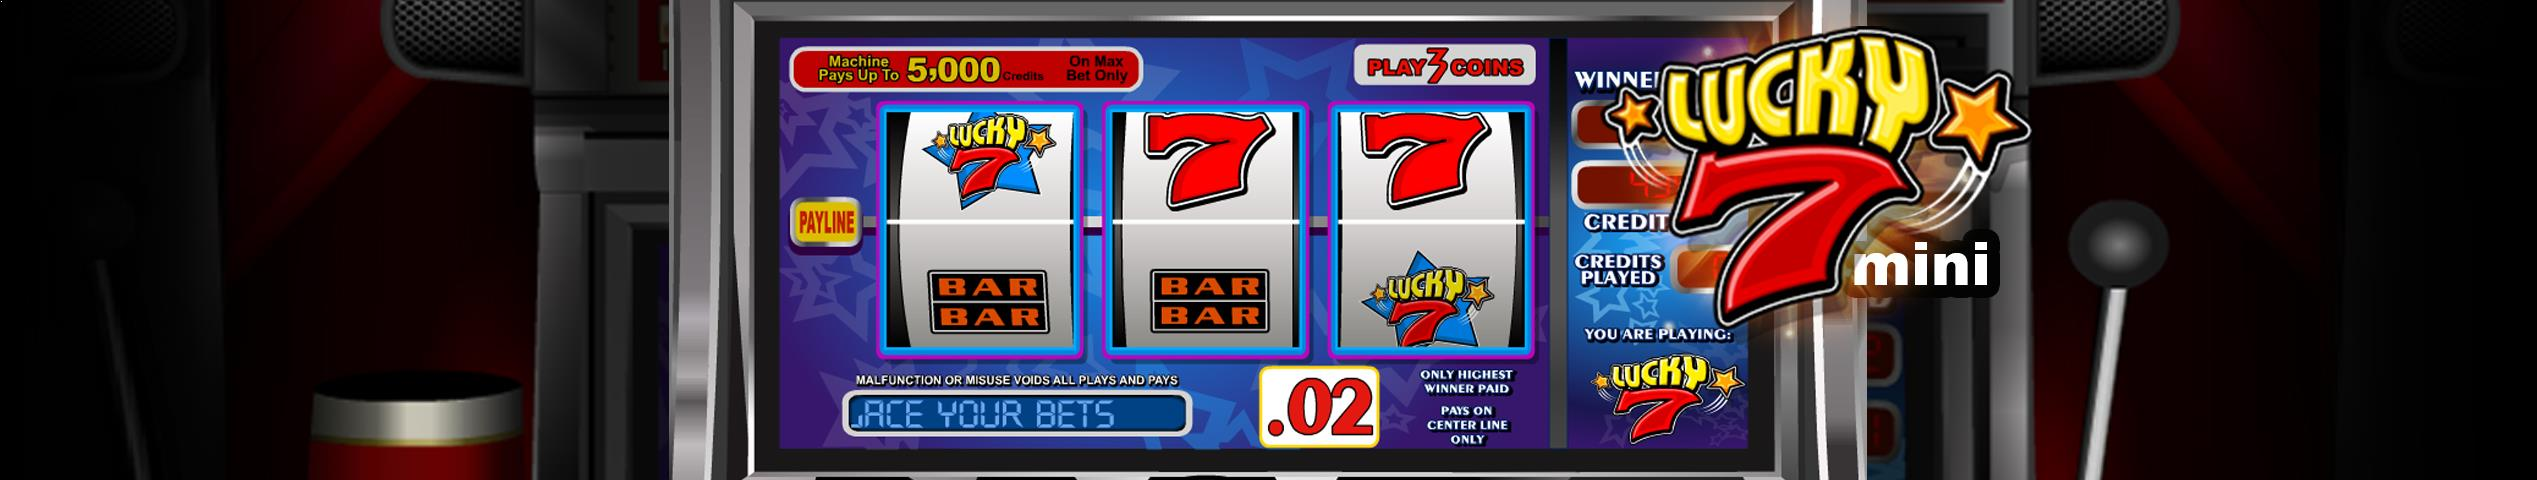 Lucky7 Mini betsoft jocuri slot slider